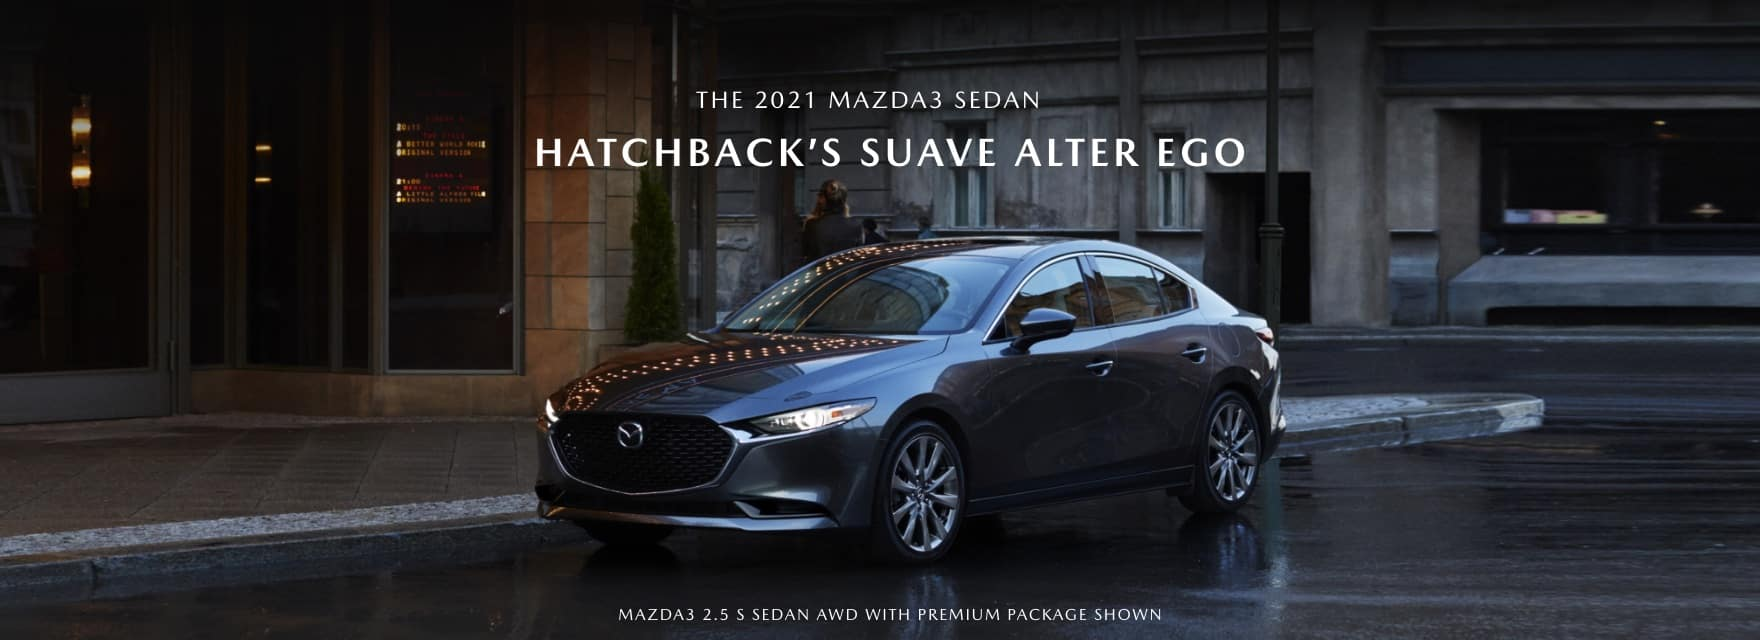 2021 mazda3 sedan parked on a city street with text overlay